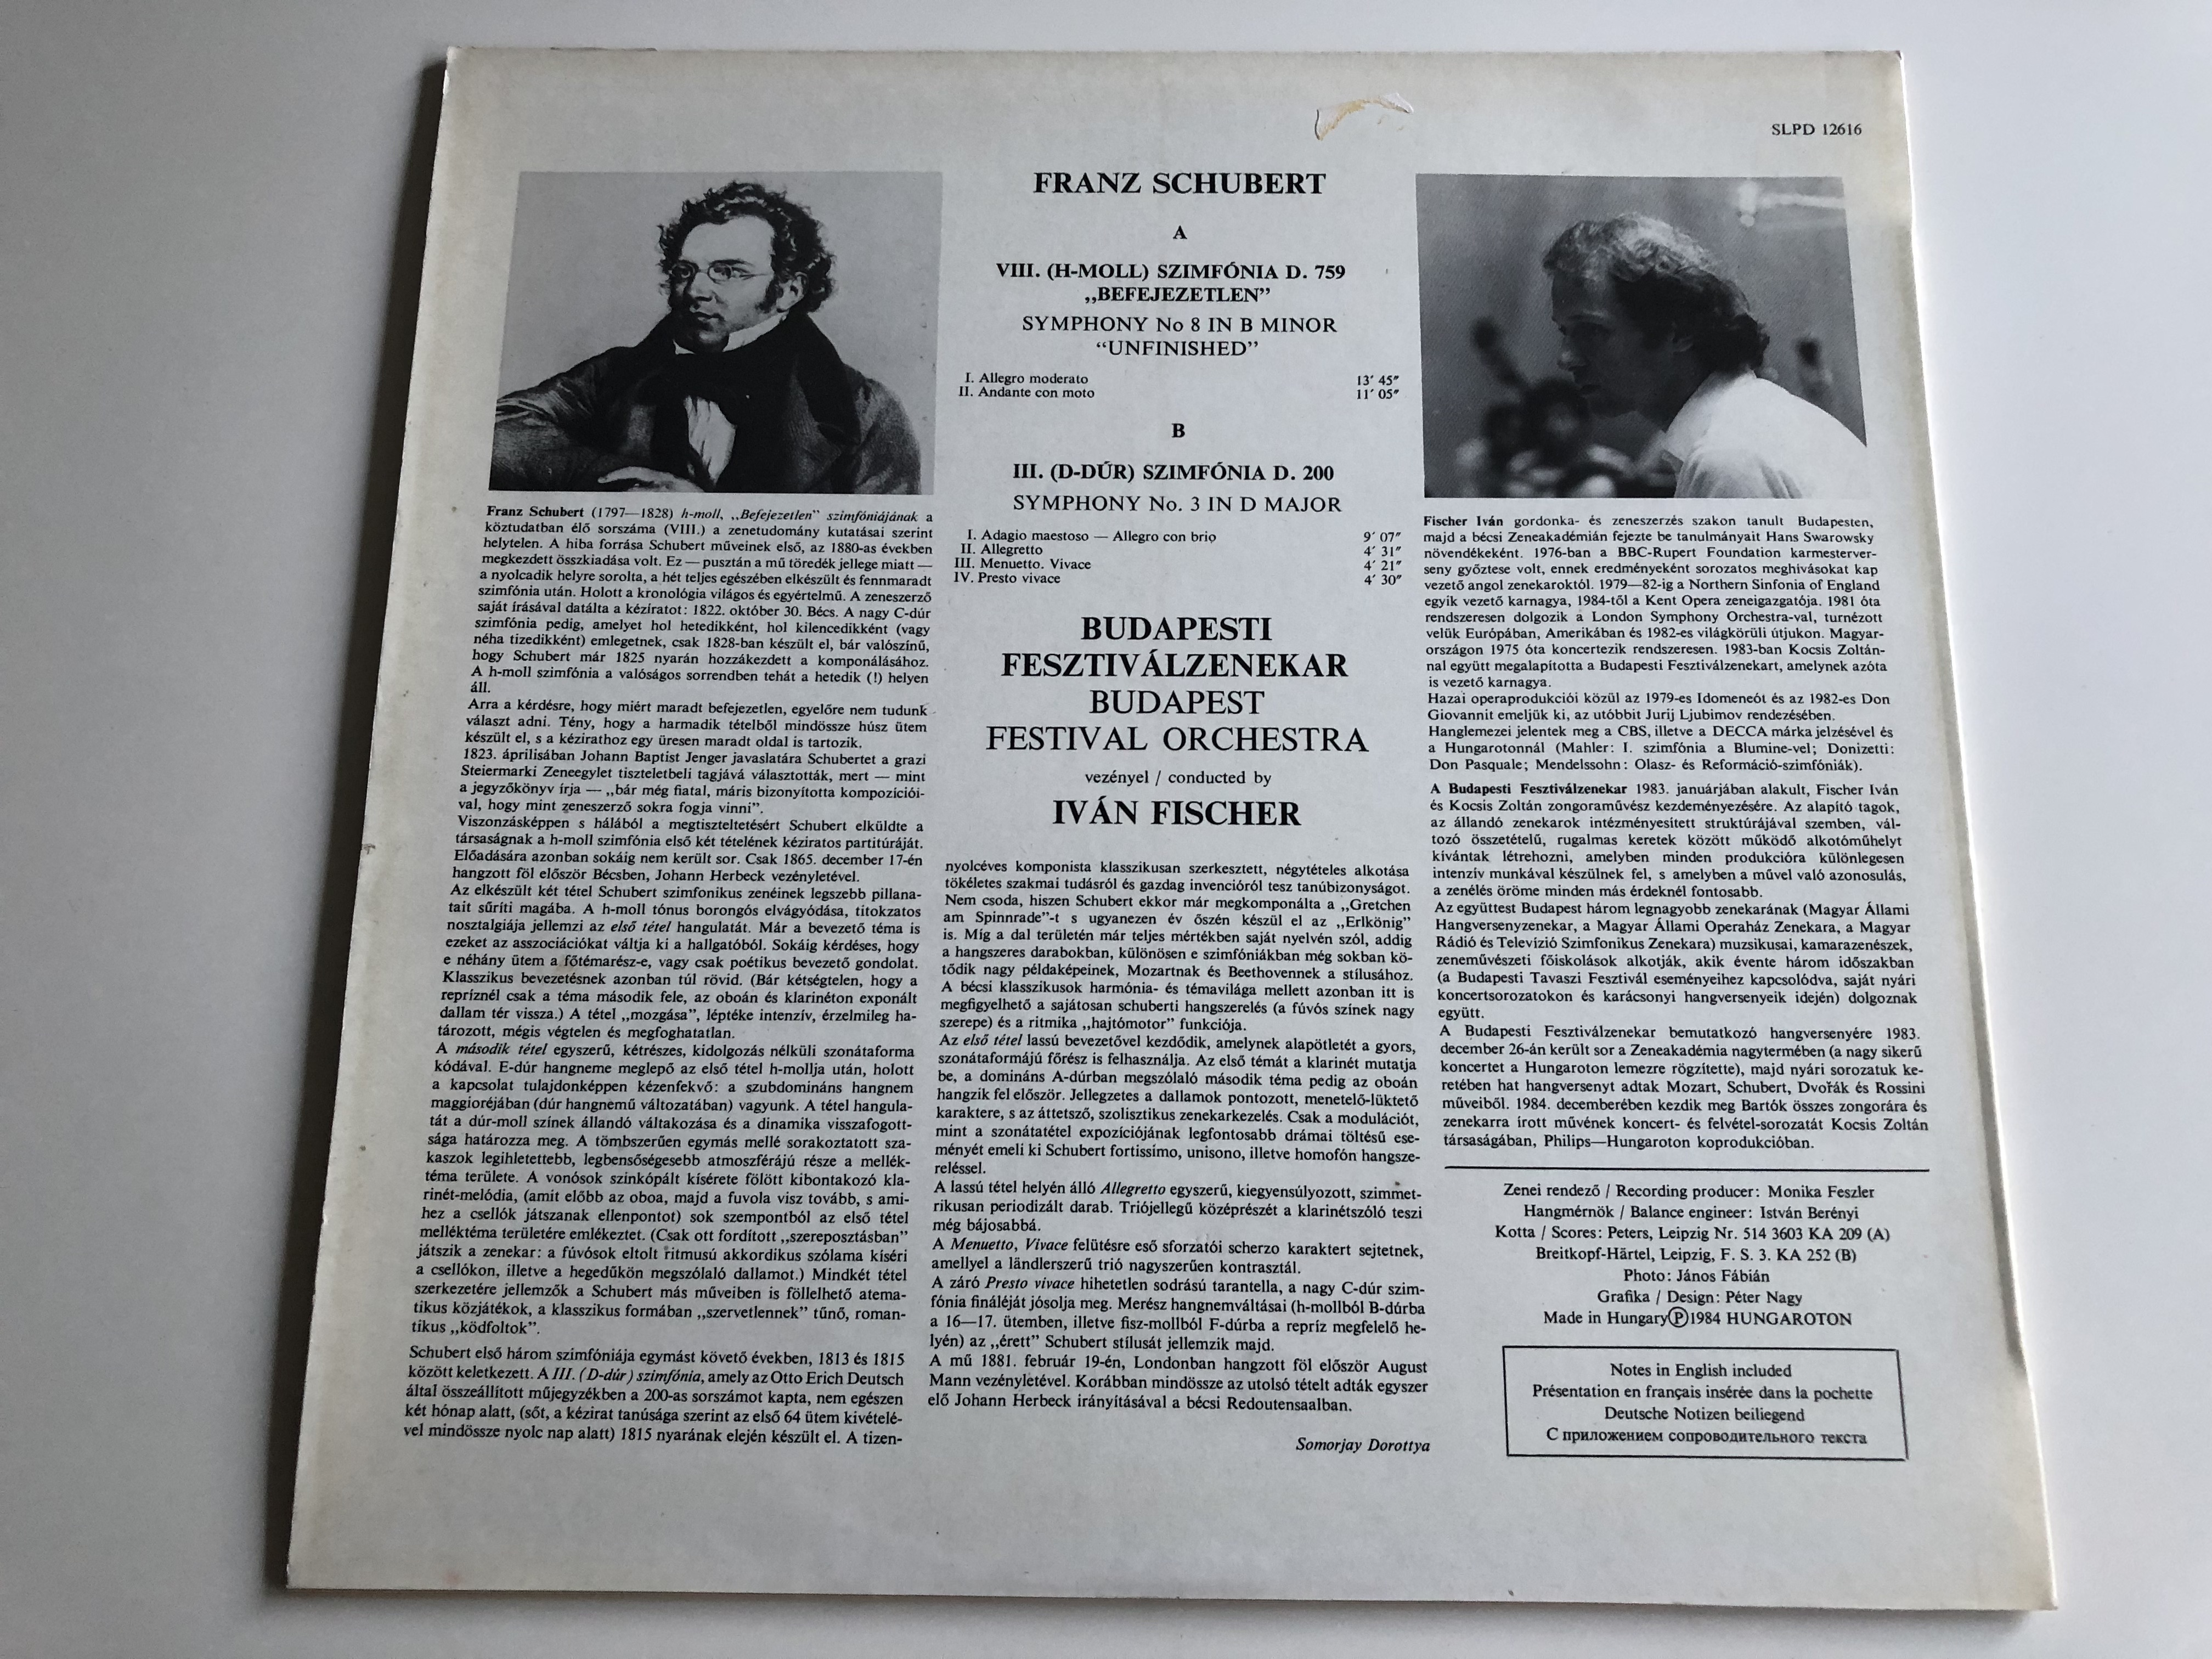 schubert-symphony-no.-8-in-b-minor-unfinished-symphony-no.-3-in-d-major-budapest-festival-orchestra-ivan-fischer-hungaroton-lp-digital-stereo-slpd-12616-2-.jpg